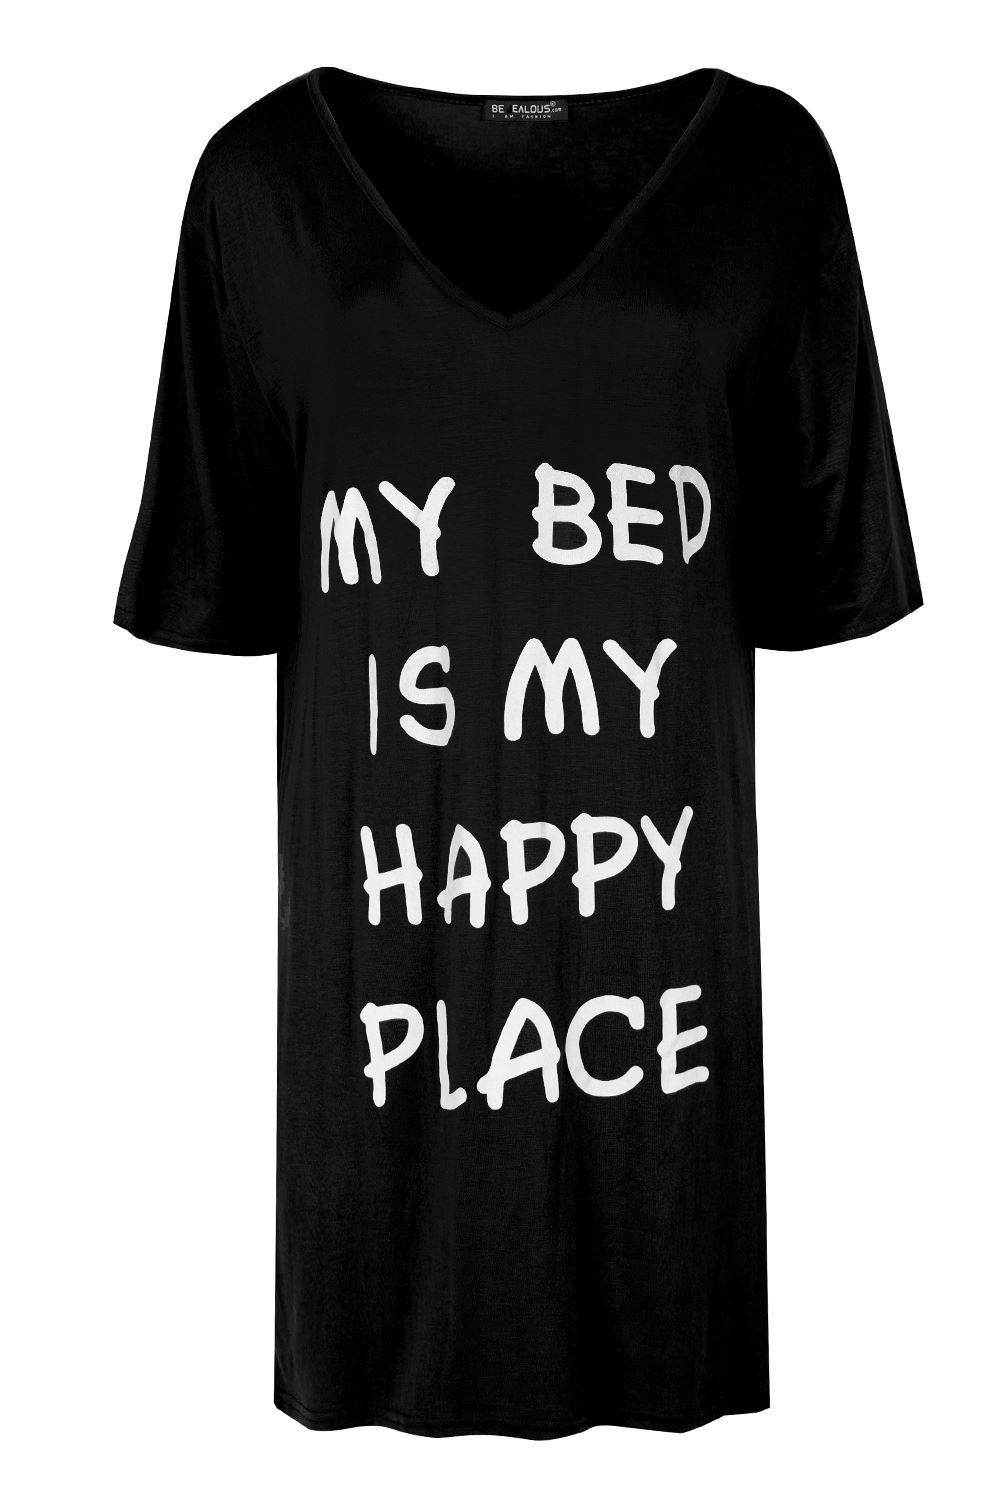 Black t shirt dress ebay - Ladies Womens Plain Oversized My My Bed Is